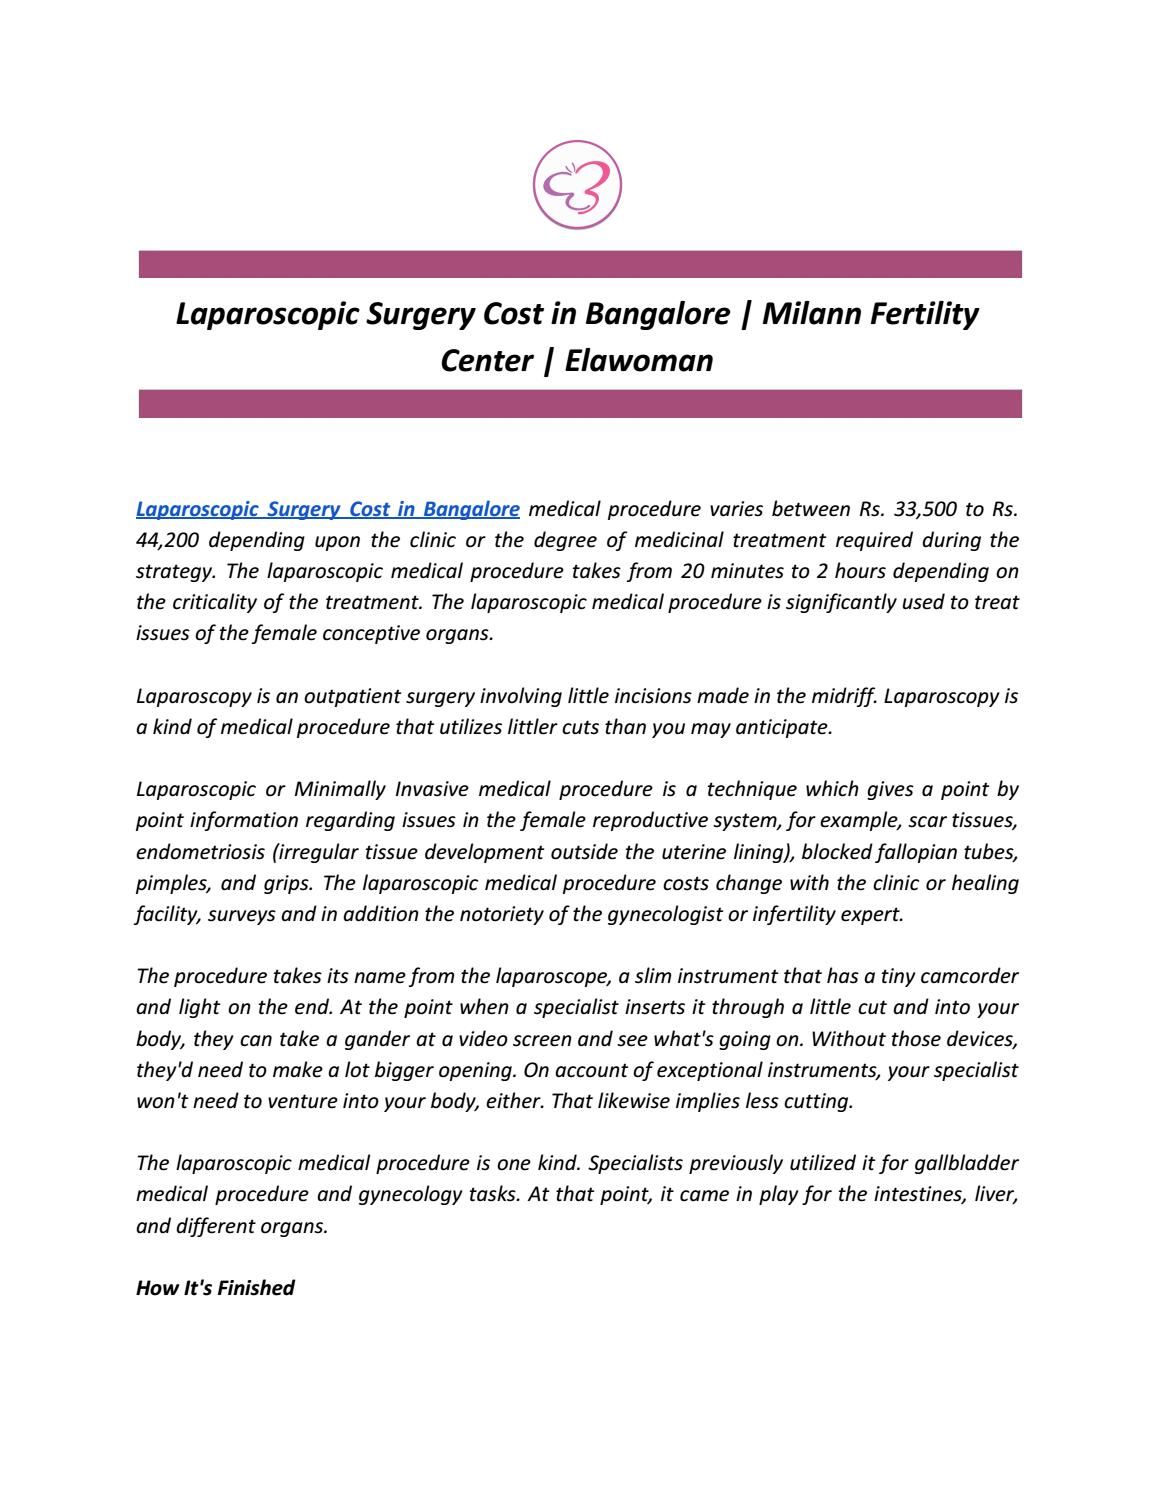 Laparoscopic Surgery Cost in Bangalore | Milann Fertility Center